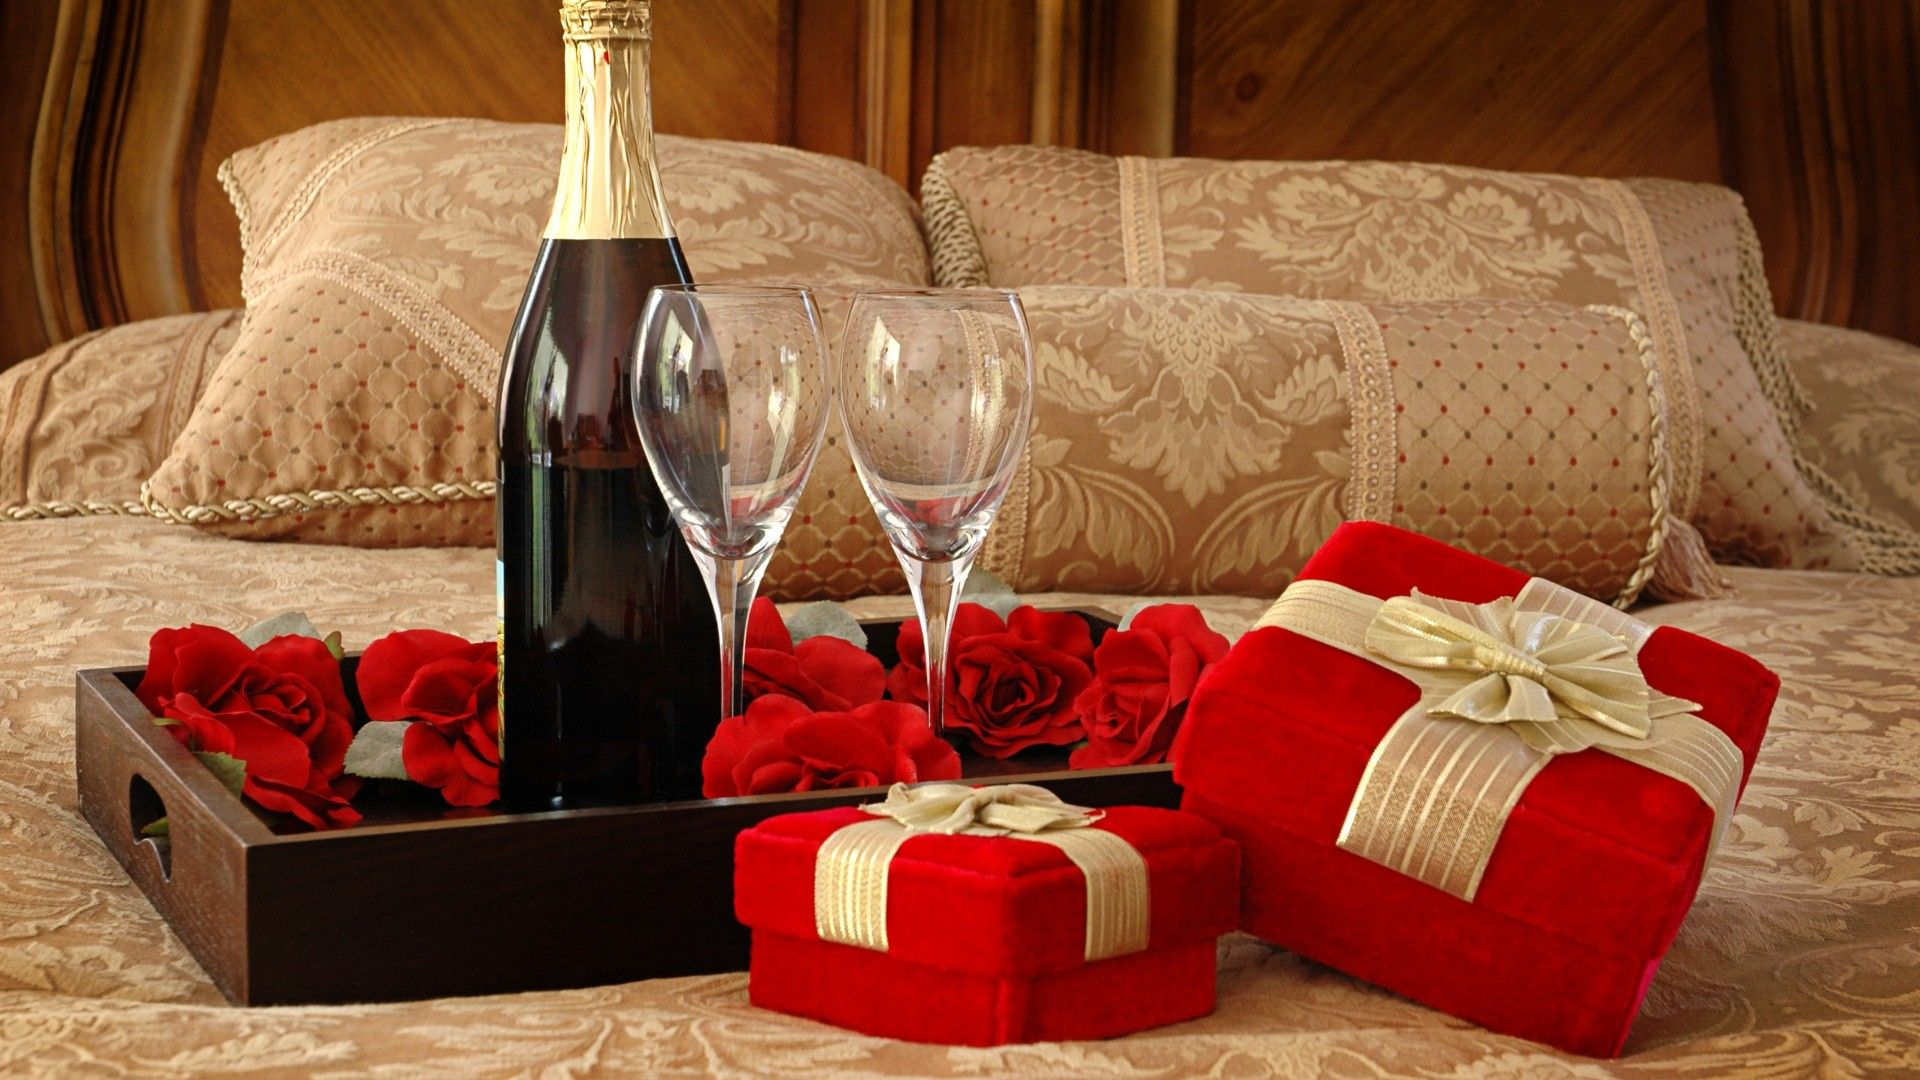 birthday activities for her ; romantic-gift-for-her-birthday